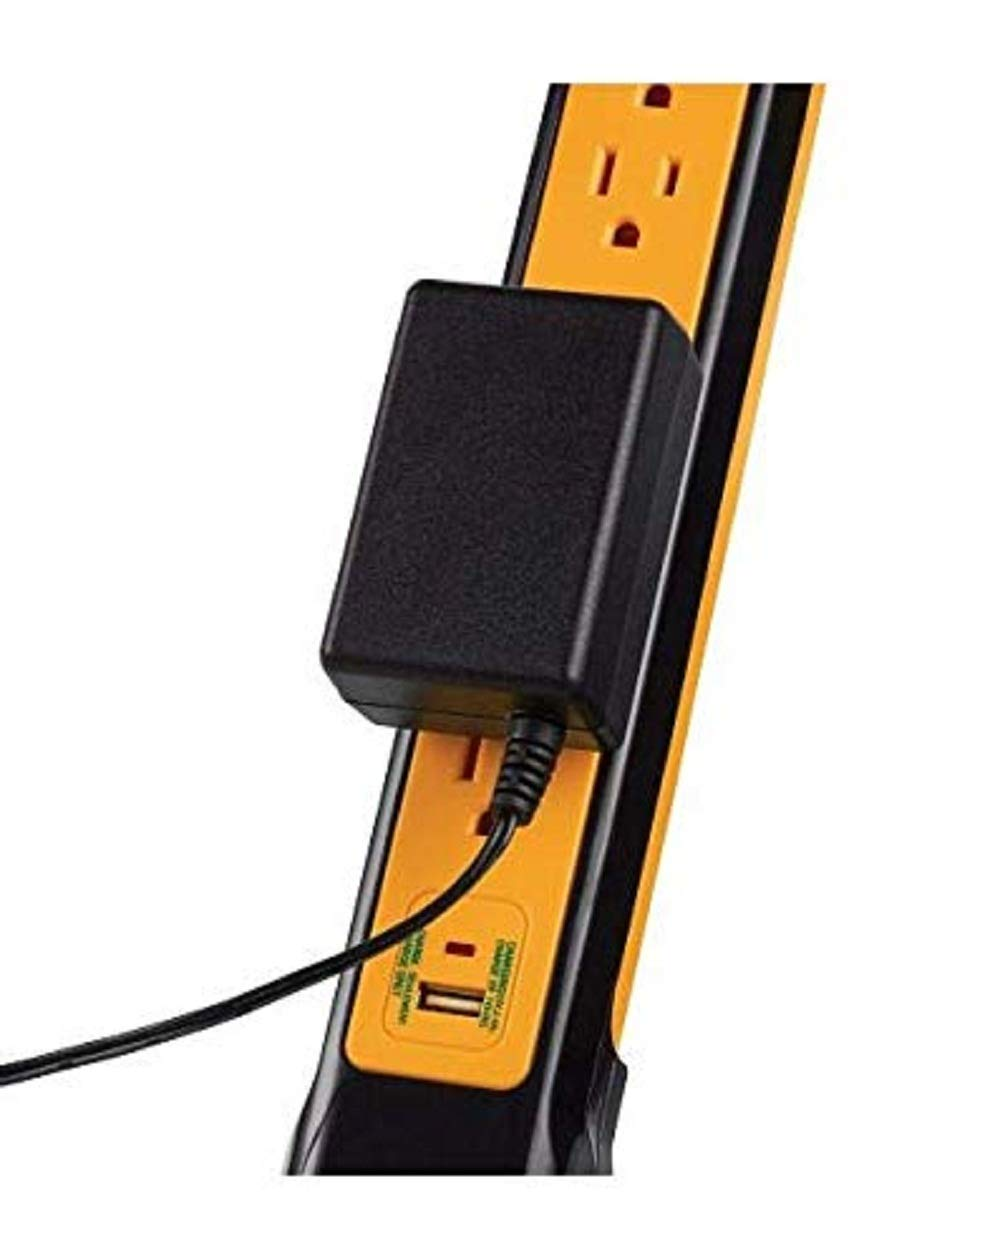 Mastercraft 6-Outlet Power Bar with USB Outlet Compatible for Home /& Office